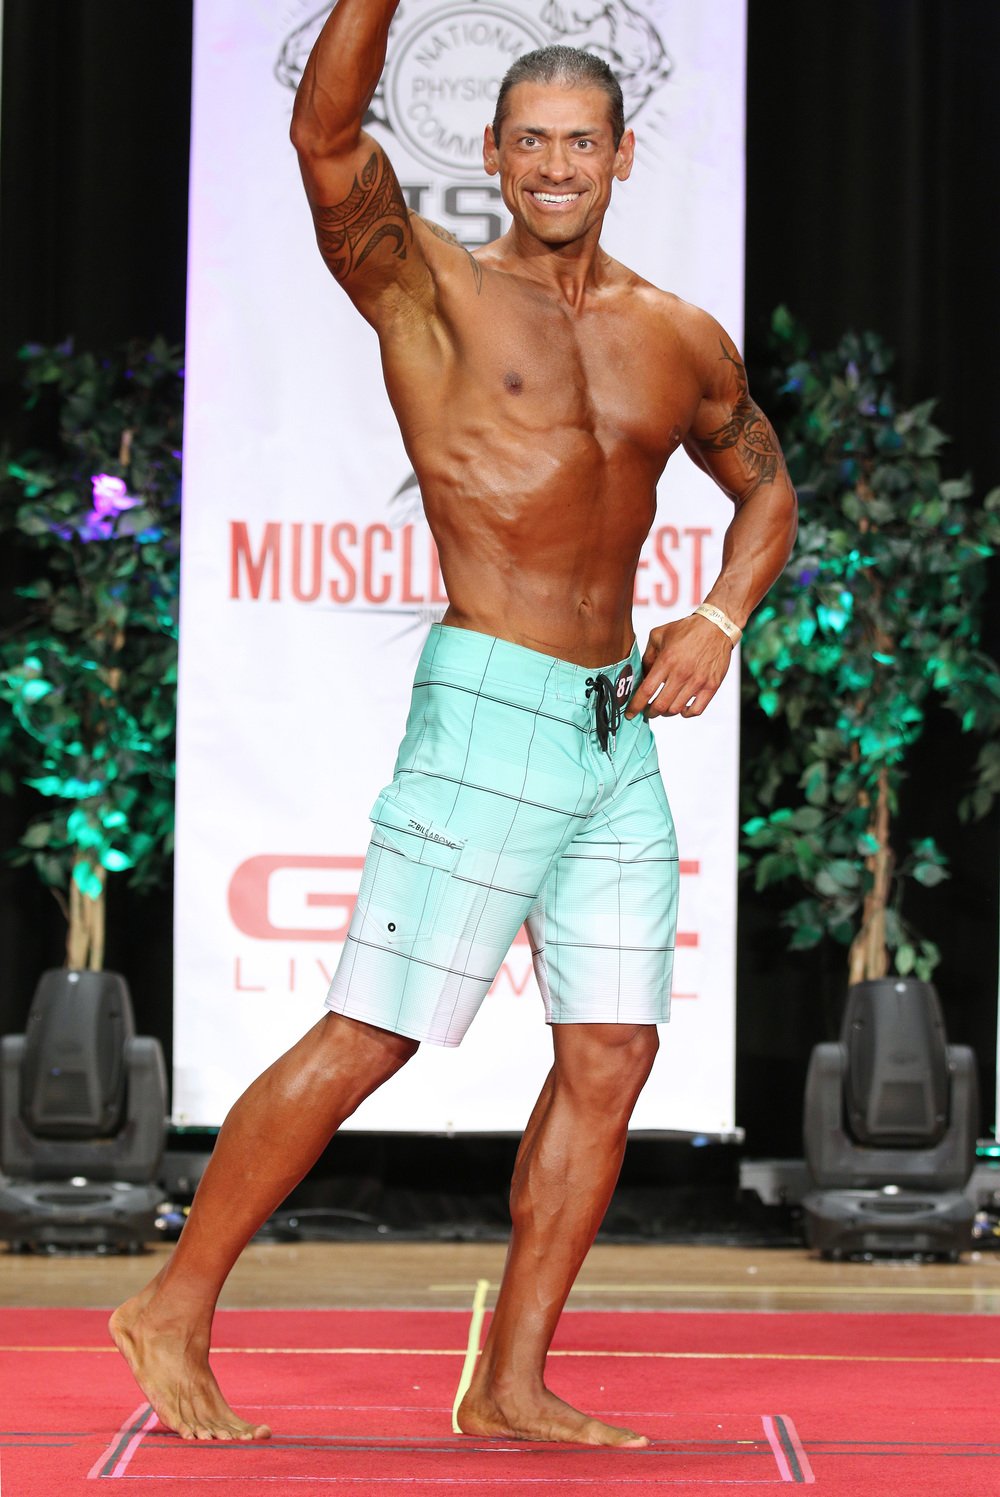 Competing Men's Physique - This was my second show in men's physique and personally achieve new levels of fitness as well as mental strength to accomplish my goals.